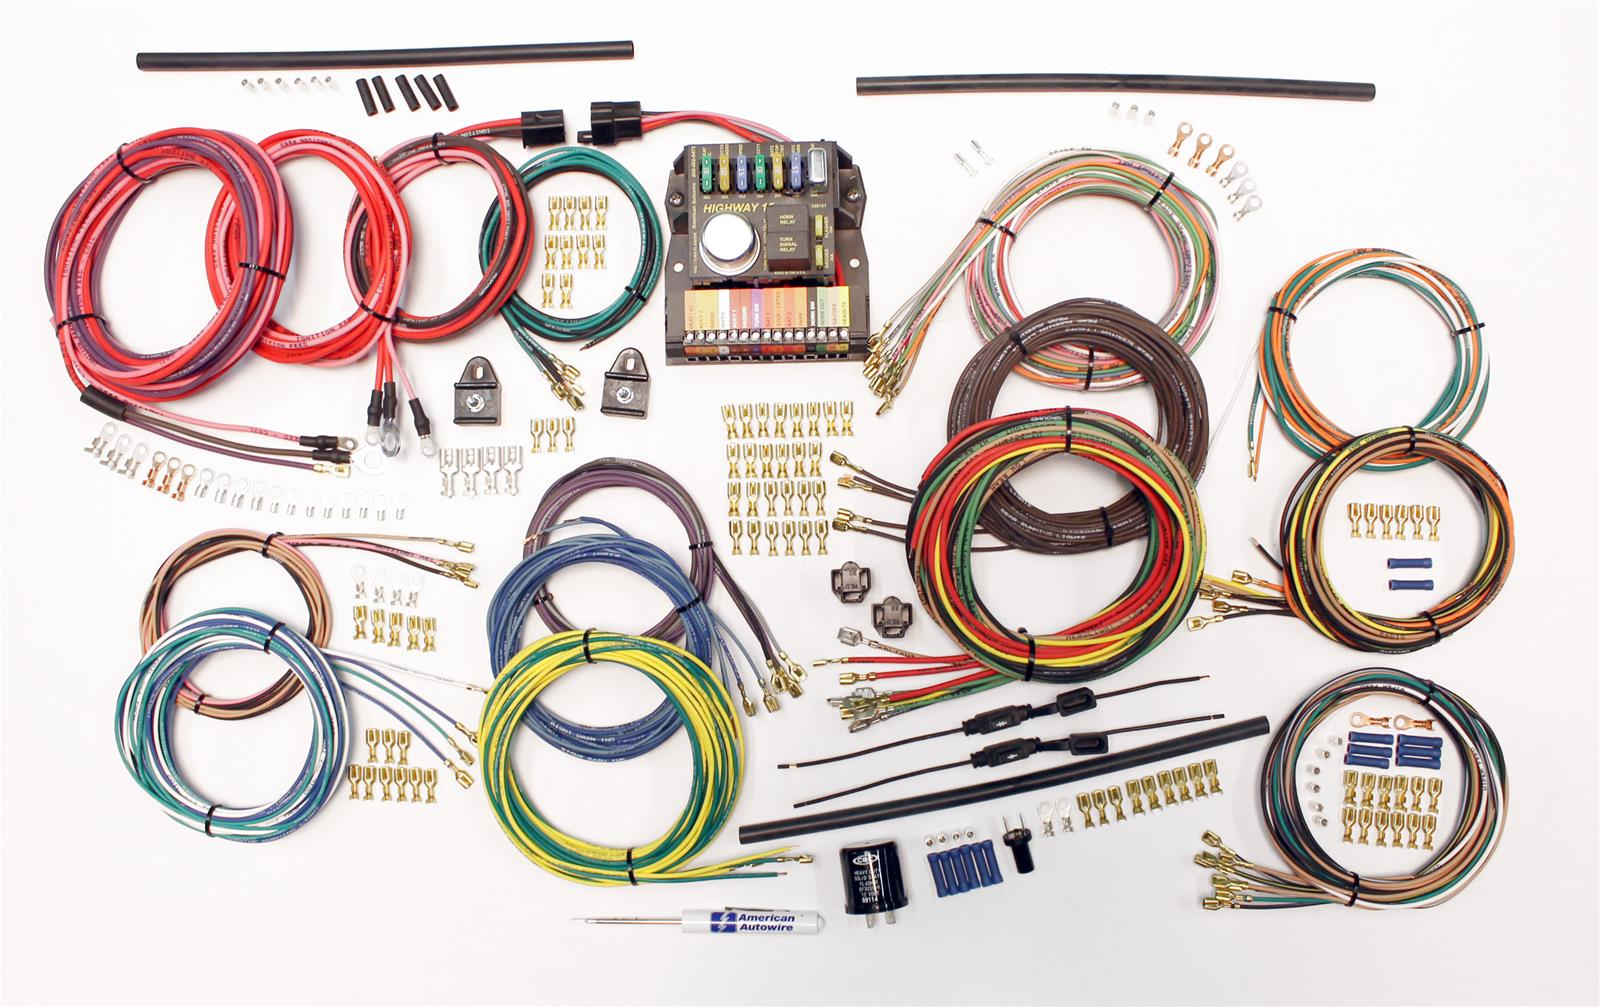 Dune Buggy Wiring Harness Kit Library Jeep Cj5 Harnesses Jcwhitney American Autowire Classic Update Series Kits 510419